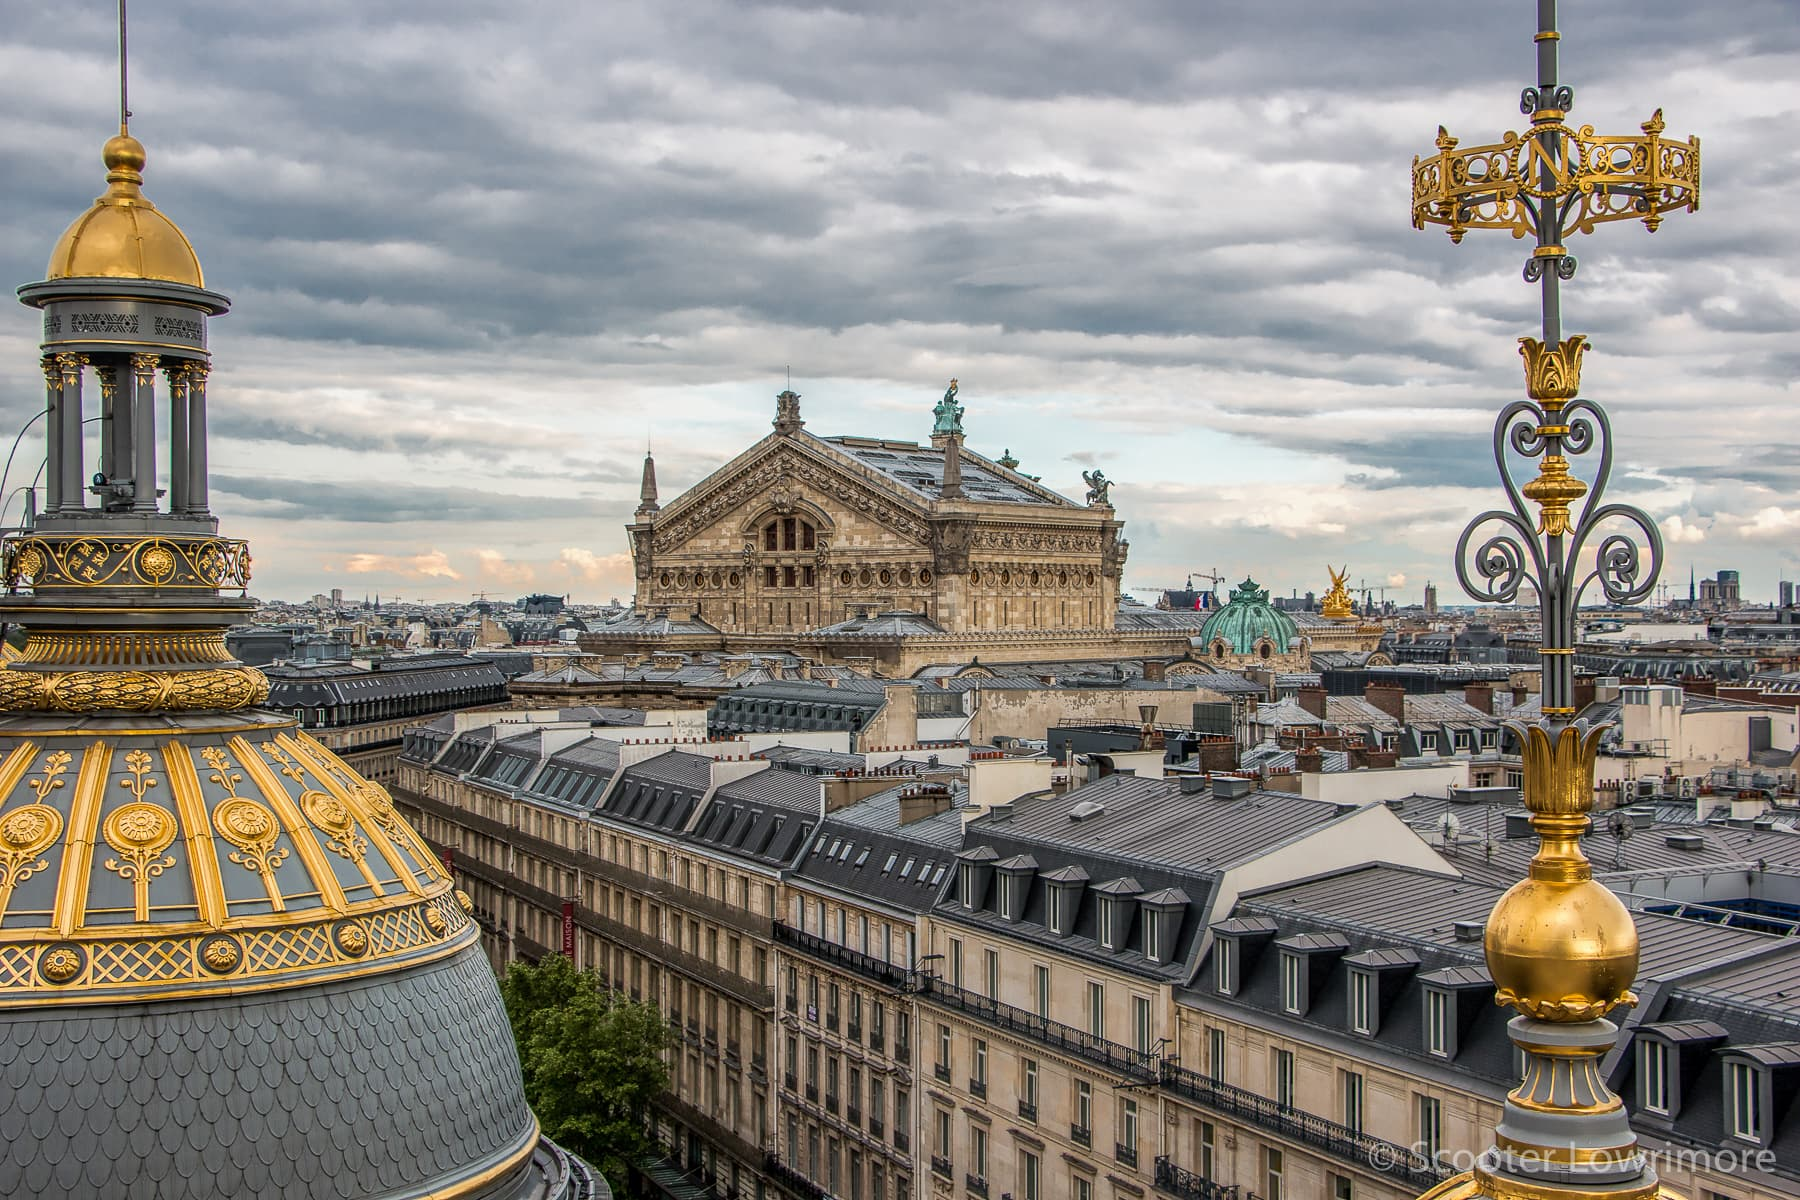 The classic roof design on Paris buildings is partly the result of taxation laws created in the 17th century. (Source:  Scooter Lowrimore )